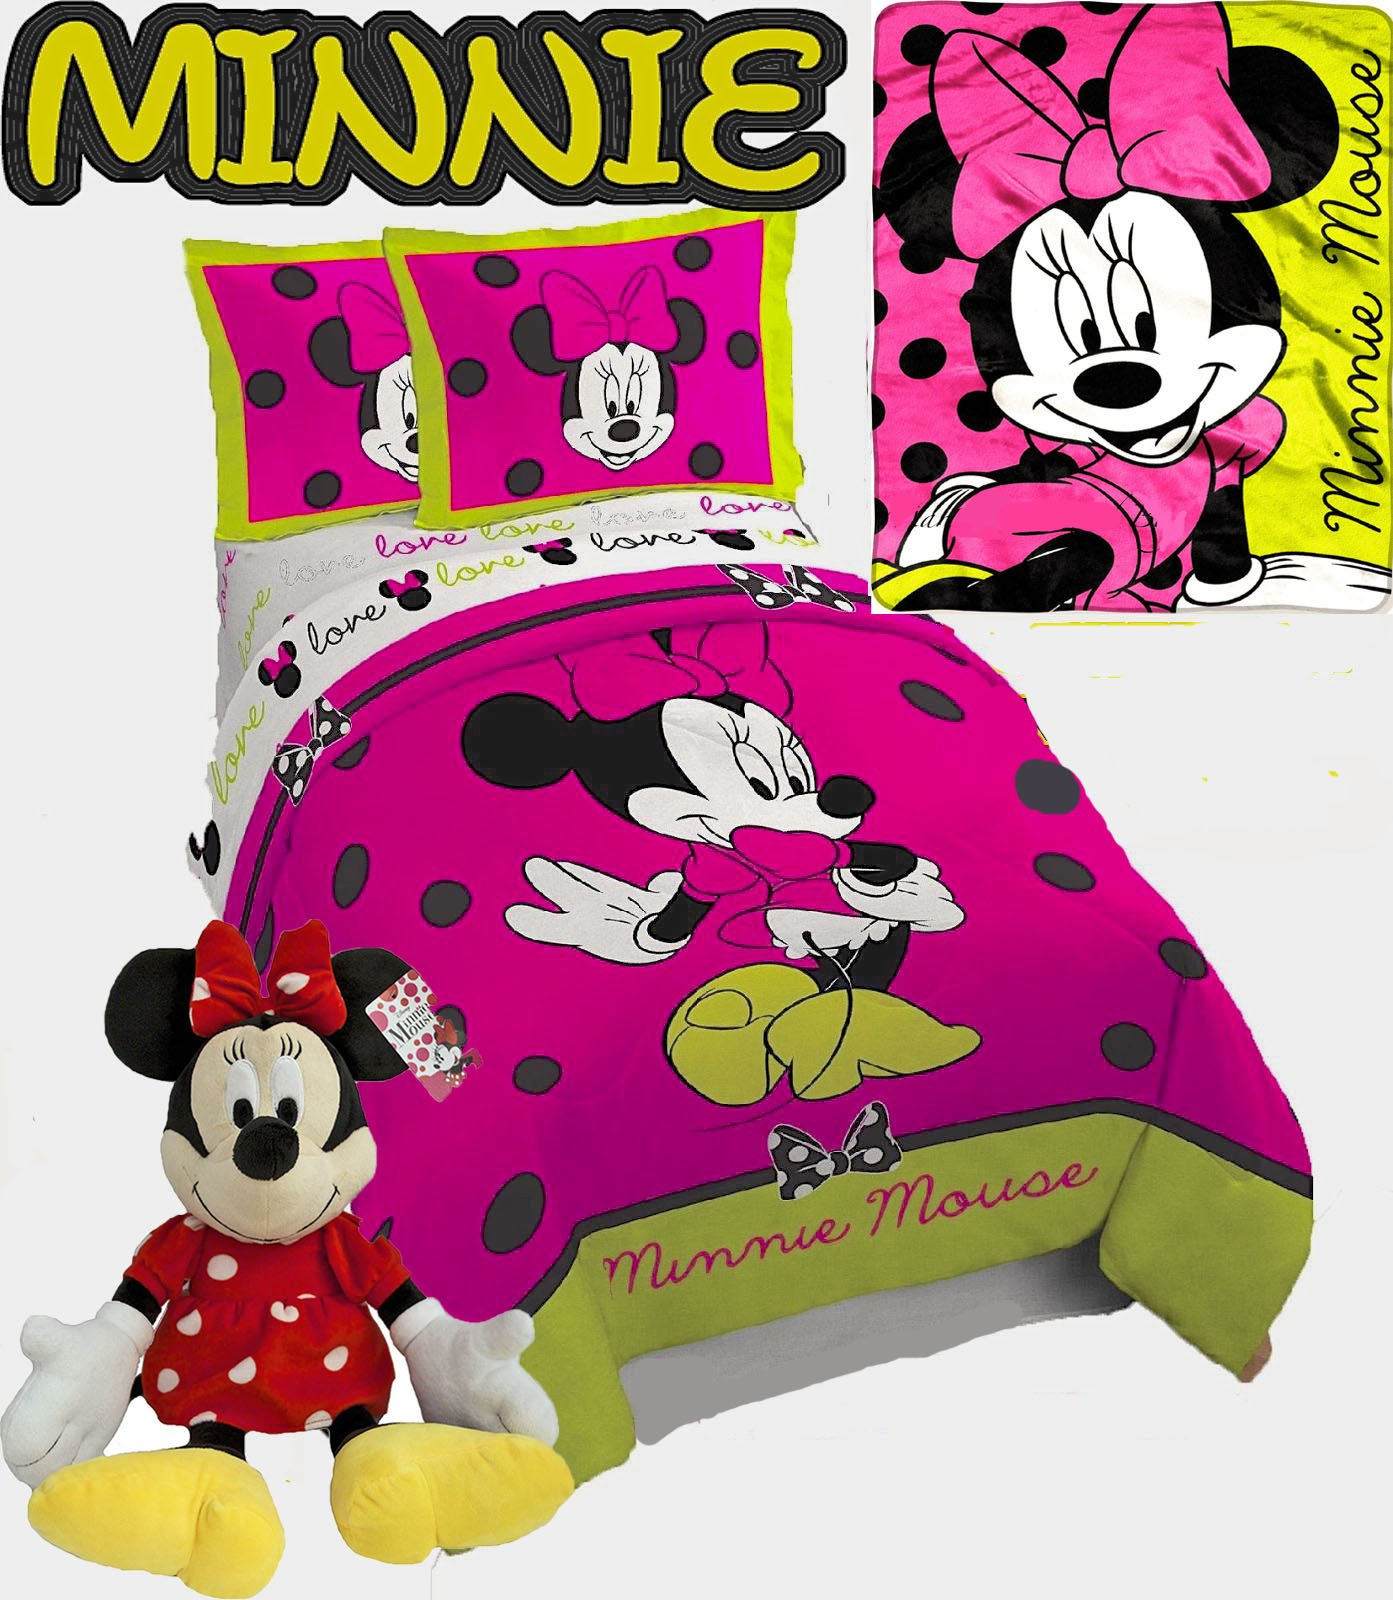 Disney 8pc MINNIE MOUSE Hot Pink Twin/Full Size Comforter (72'' x 86'') with 2-Pillow Shams, 1-TWIN Size Sheet Set, 1-60'' x 42'' THROW Blanket and One MINNIE PAL!